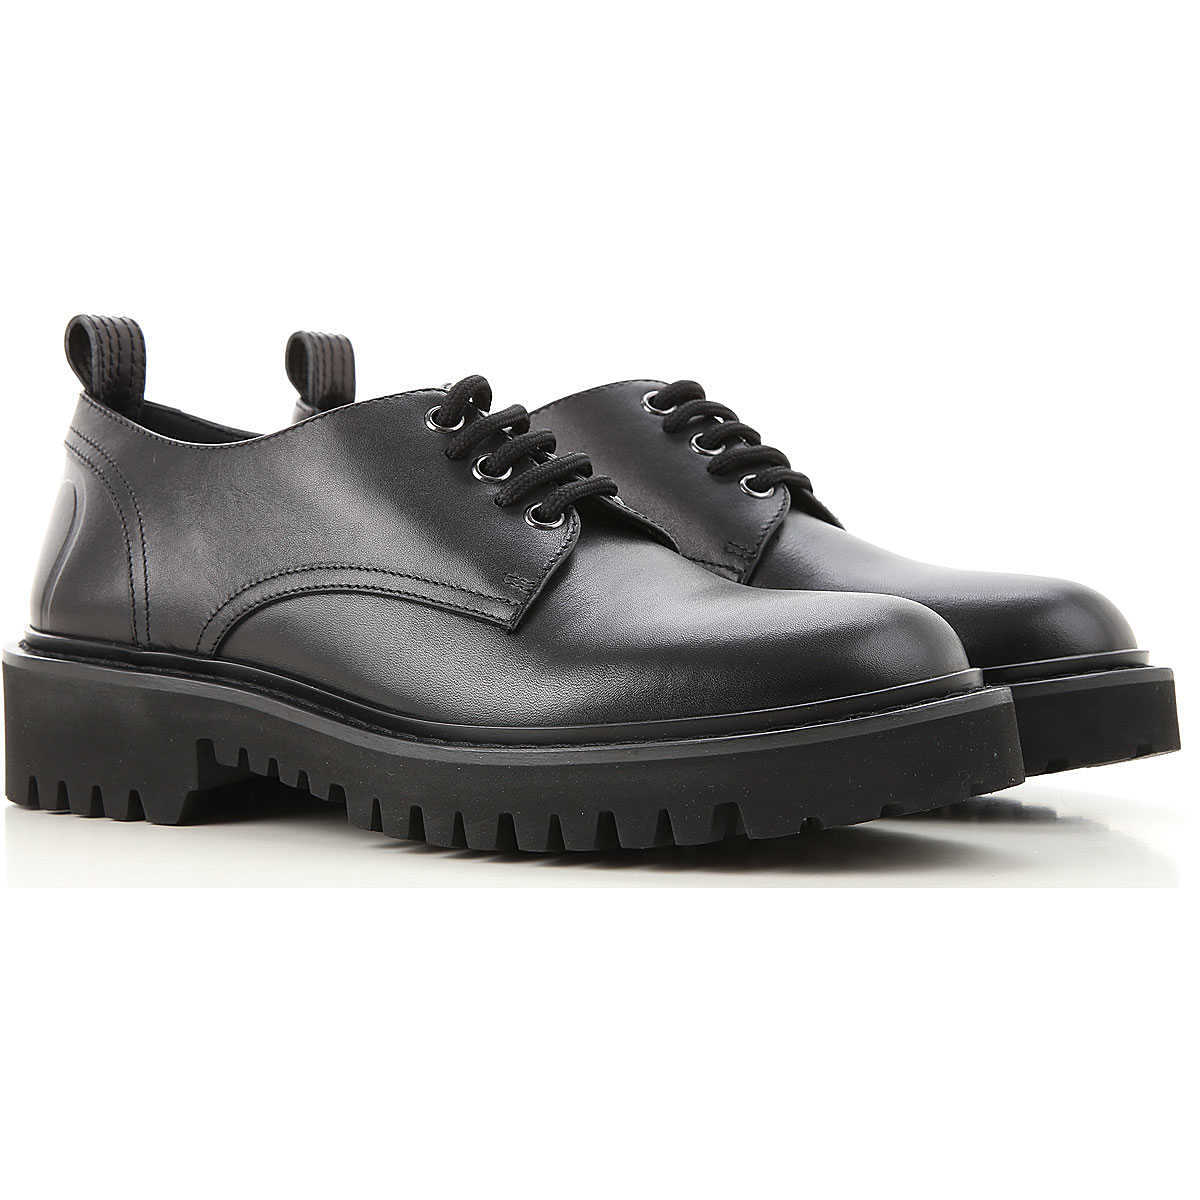 Valentino Garavani Lace Up Shoes for Men Oxfords Derbies and Brogues - GOOFASH